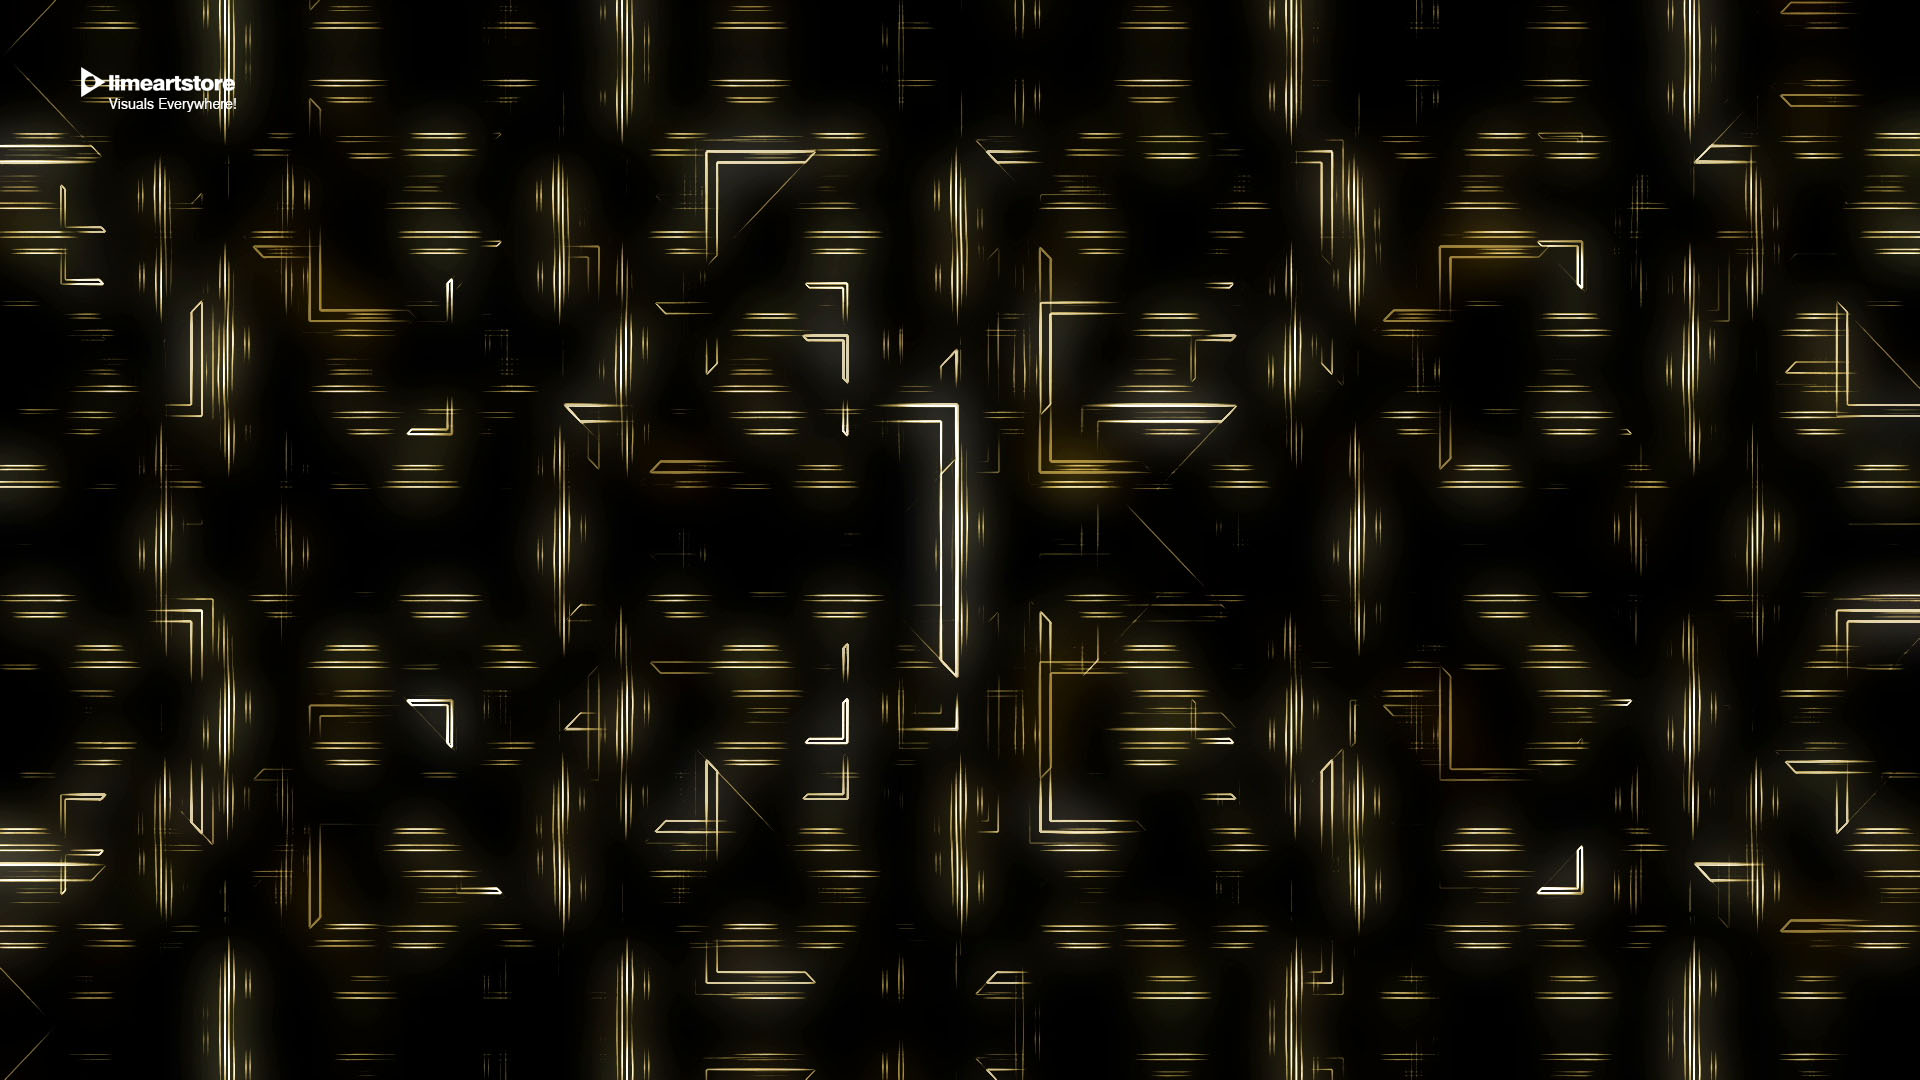 VJ Loops Minimal Video Footages Motion Lines HD VIsuals 1